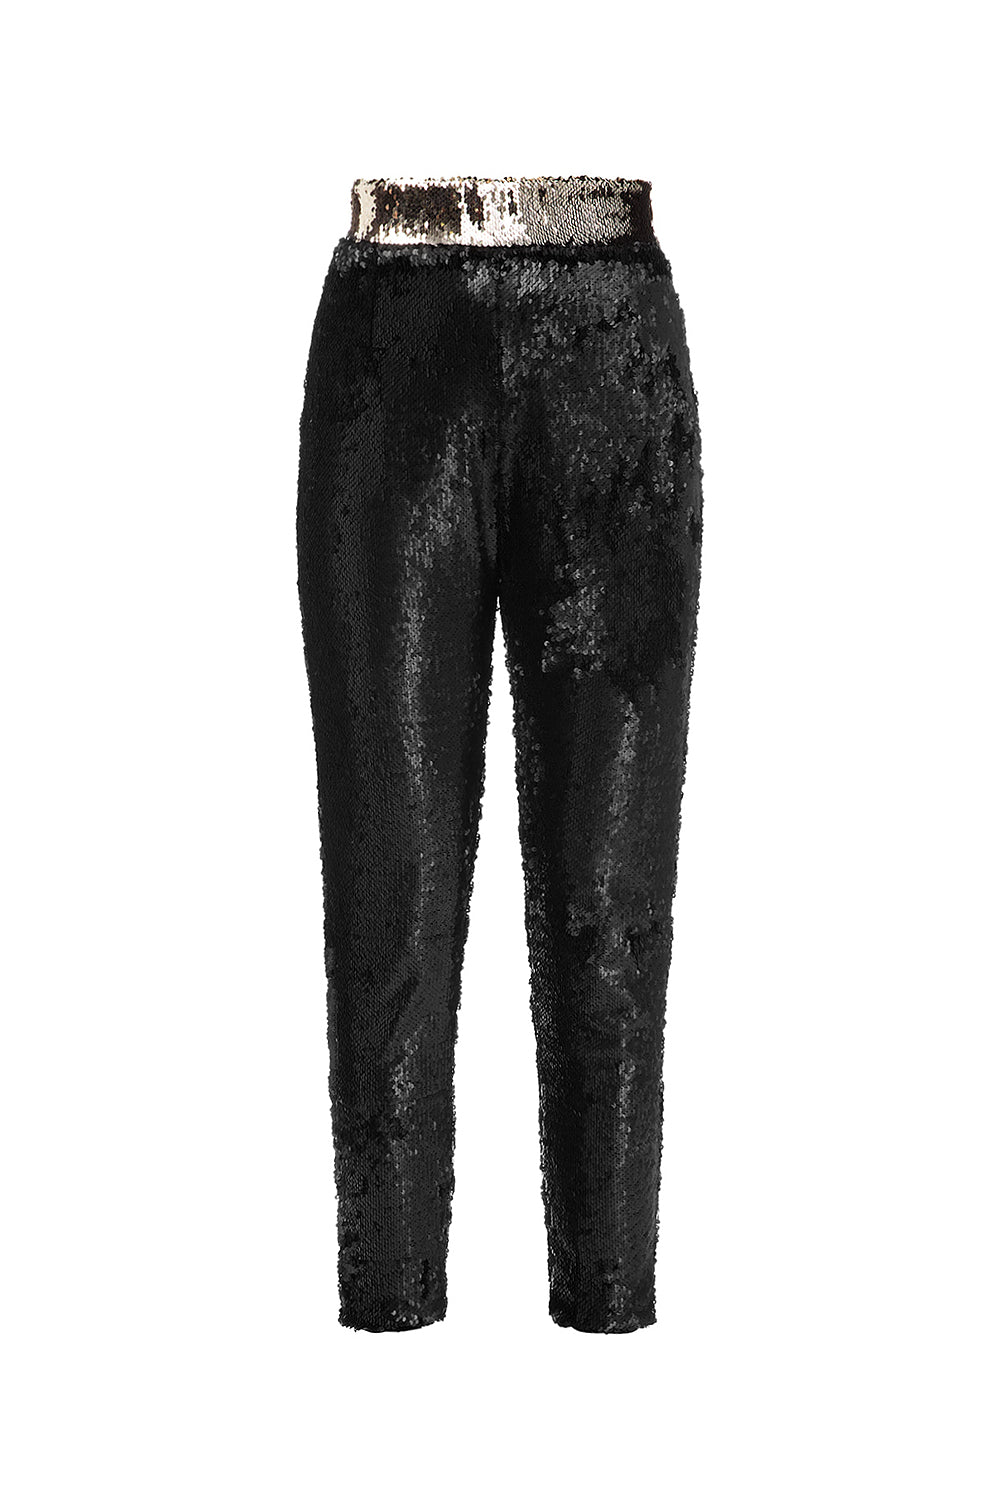 Black trousers with sequins